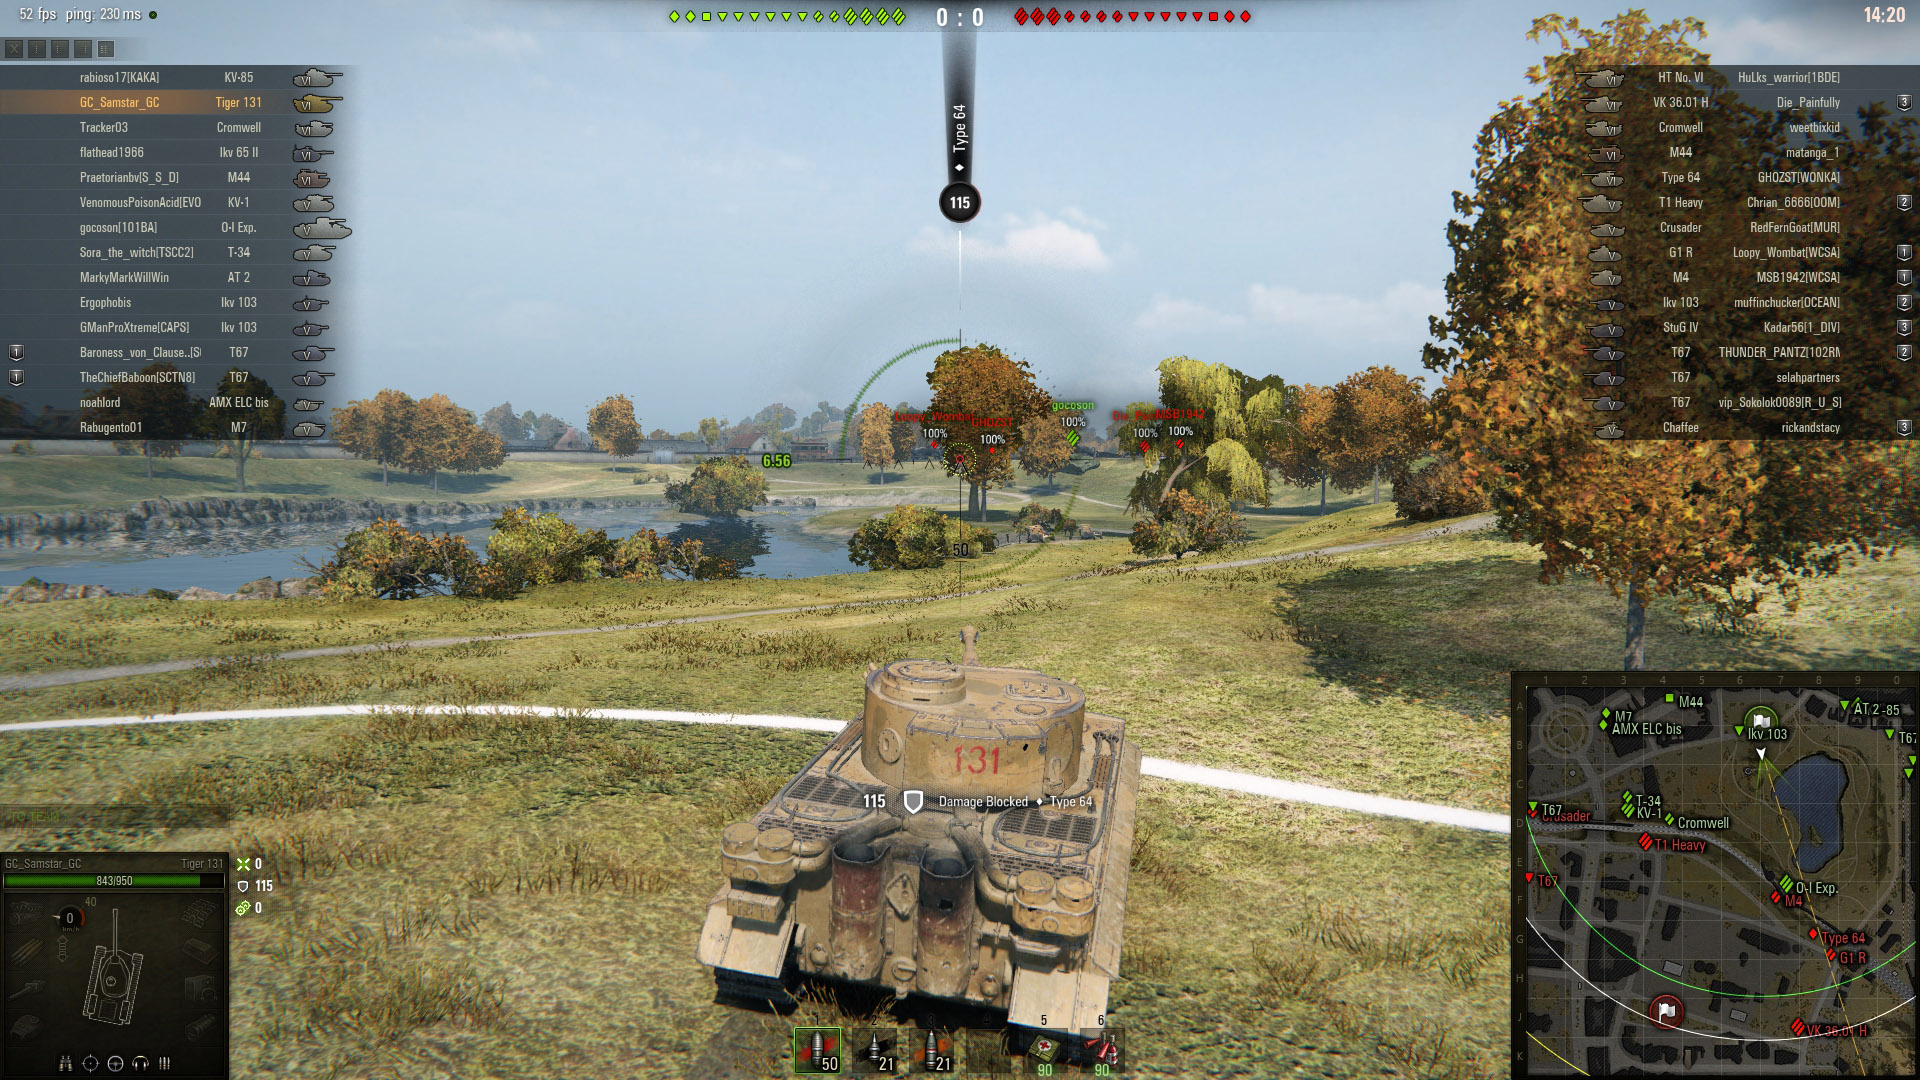 Wiggling the thin hull armor of the Tiger 131 or its thick mantlet armor can result in successful bounces.